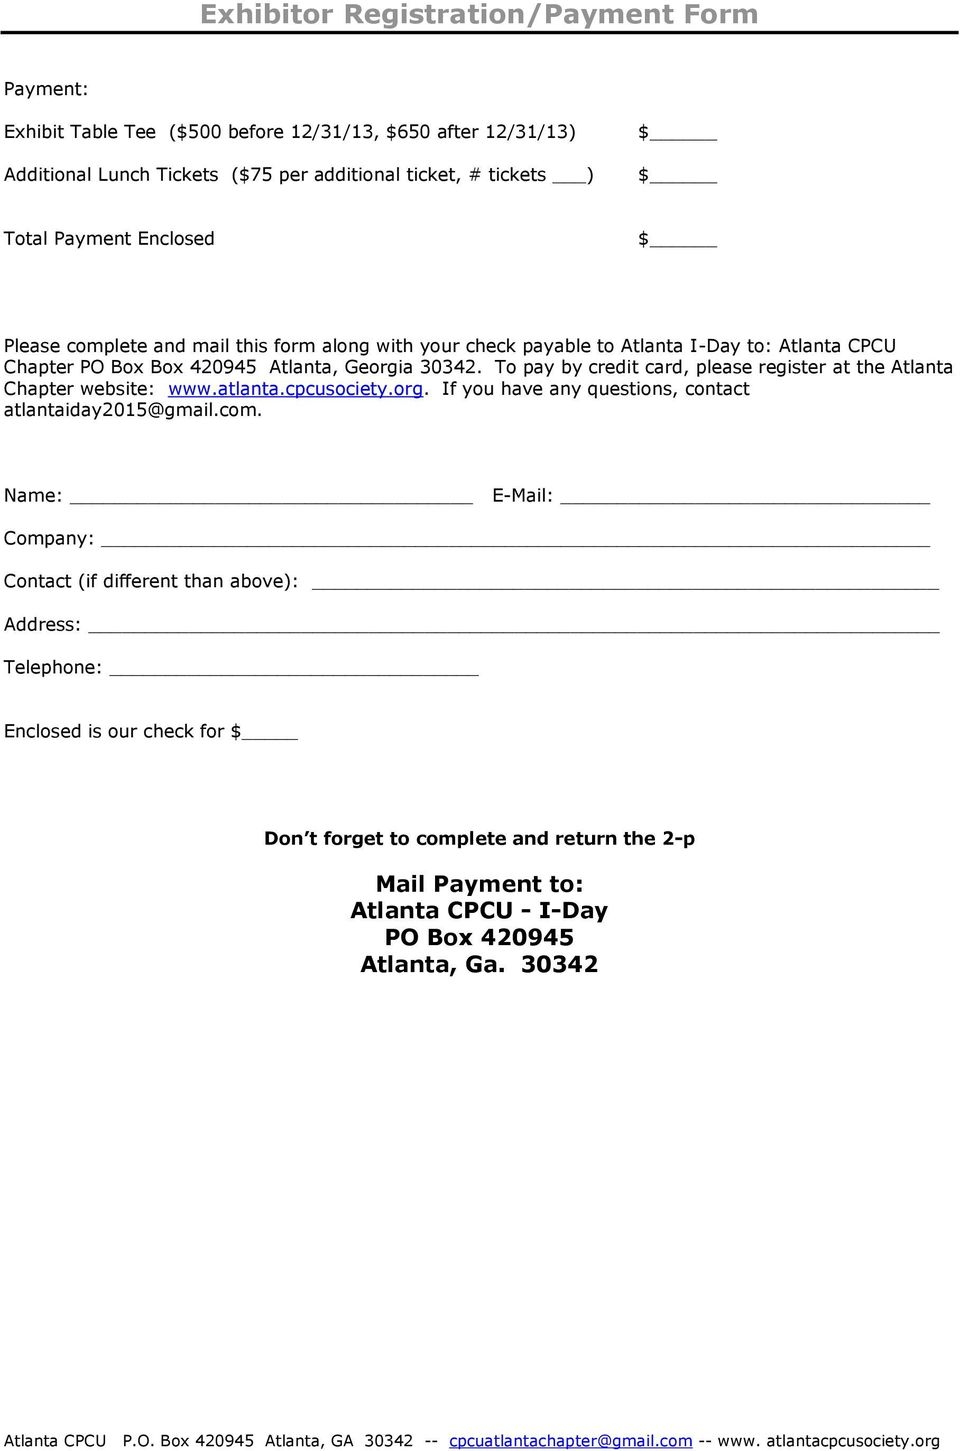 To pay by credit card, please register at the Atlanta Chapter website: www.atlanta.cpcusociety.org. If you have any questions, contact atlantaiday2015@gmail.com.